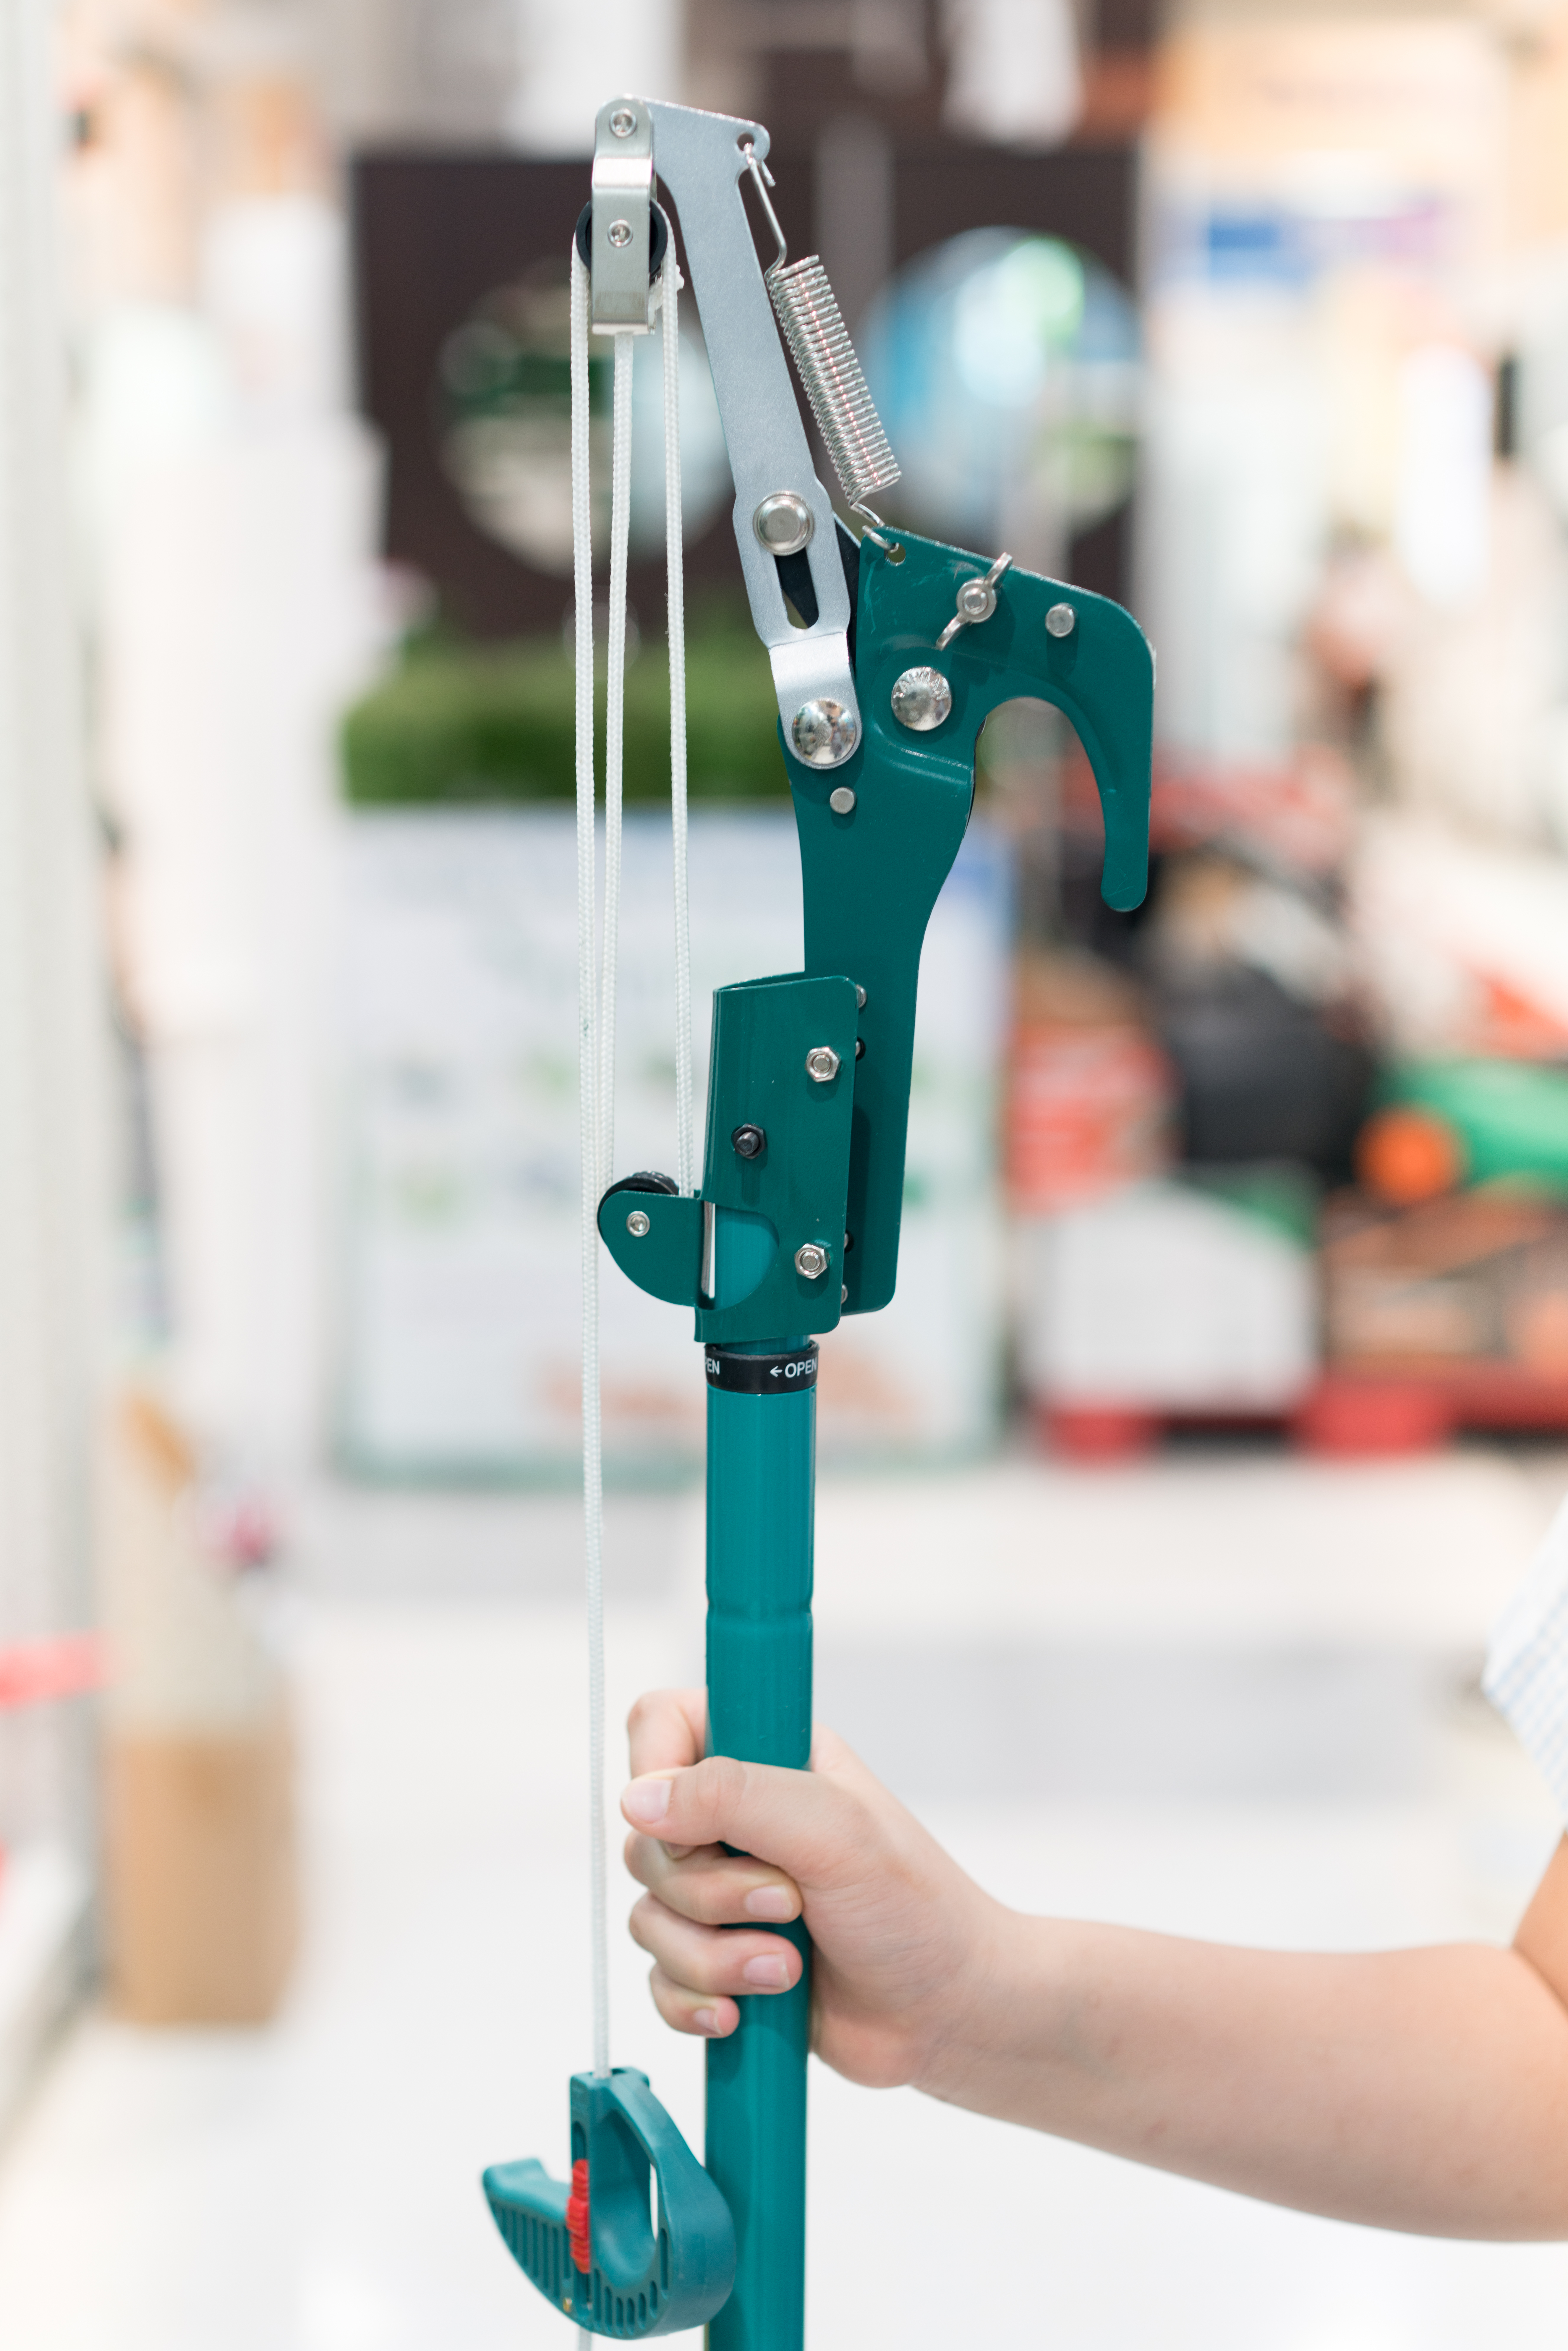 What is a Pole Pruner?